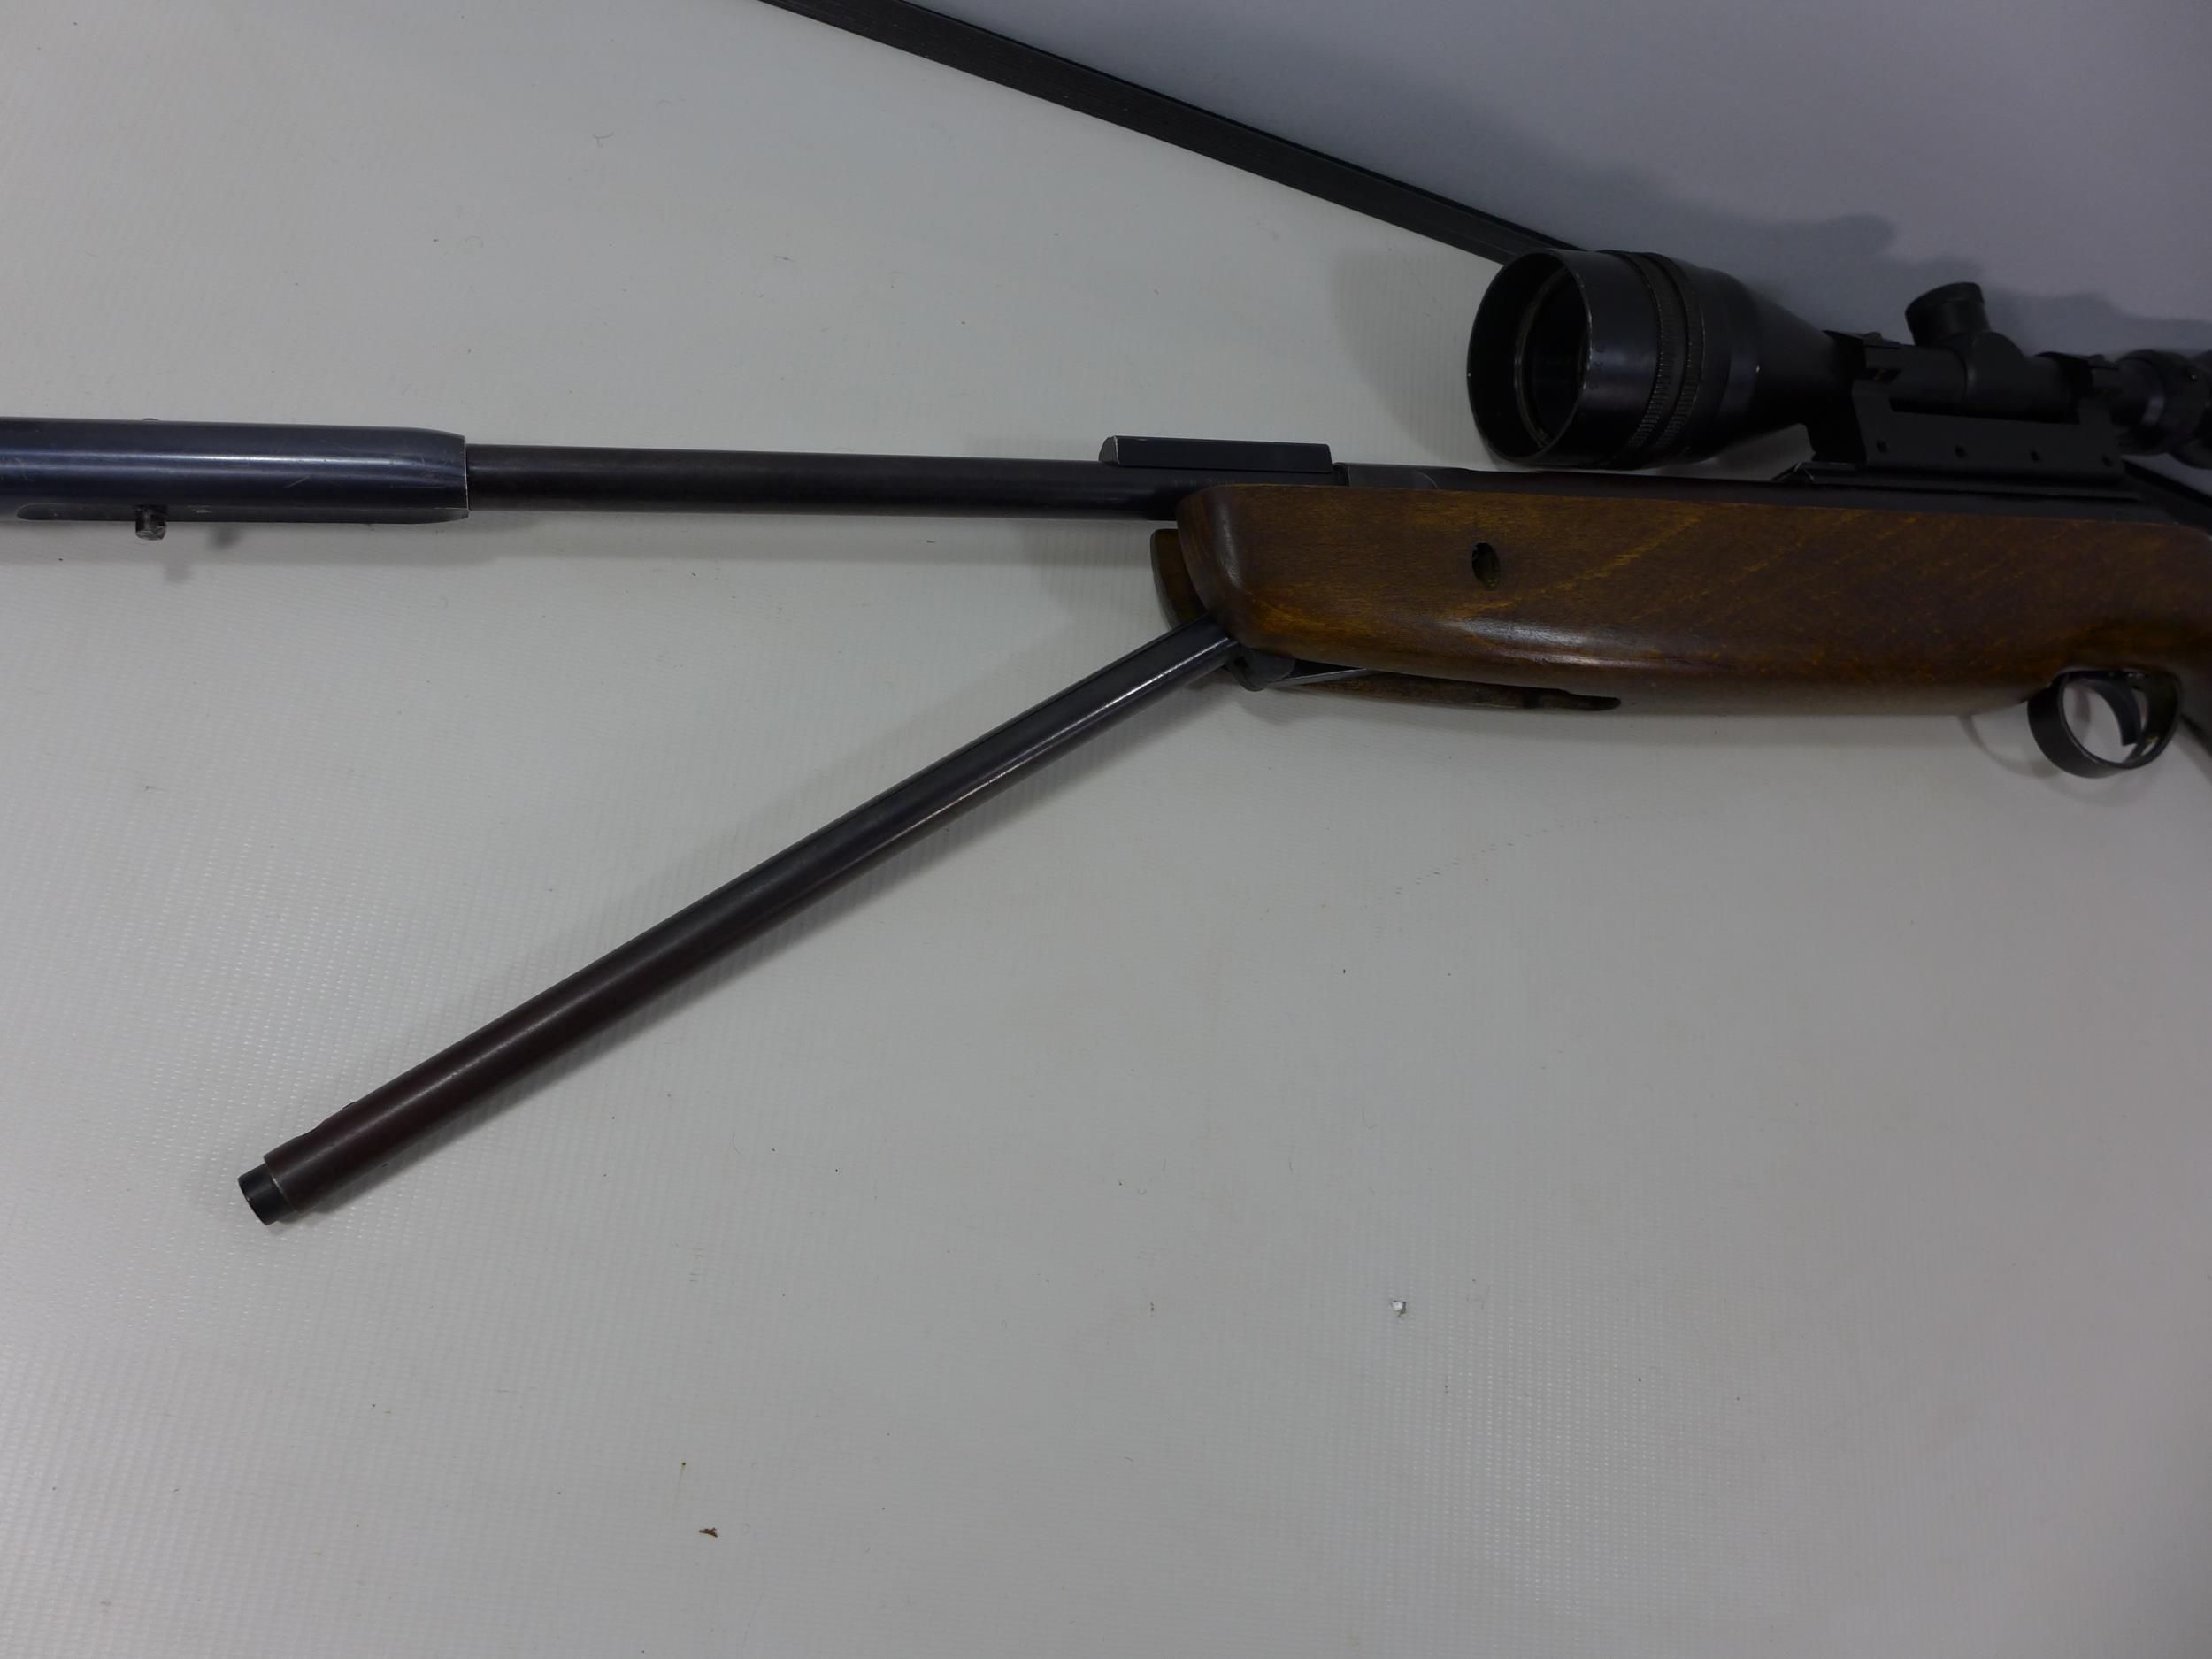 A .22 CALIBRE UNDERLEVER AIR RIFLE WITH SILENCER, LENGTH 47CM, WITH TASCO 9X50 TELESCOPIC SIGHTS - Image 5 of 7